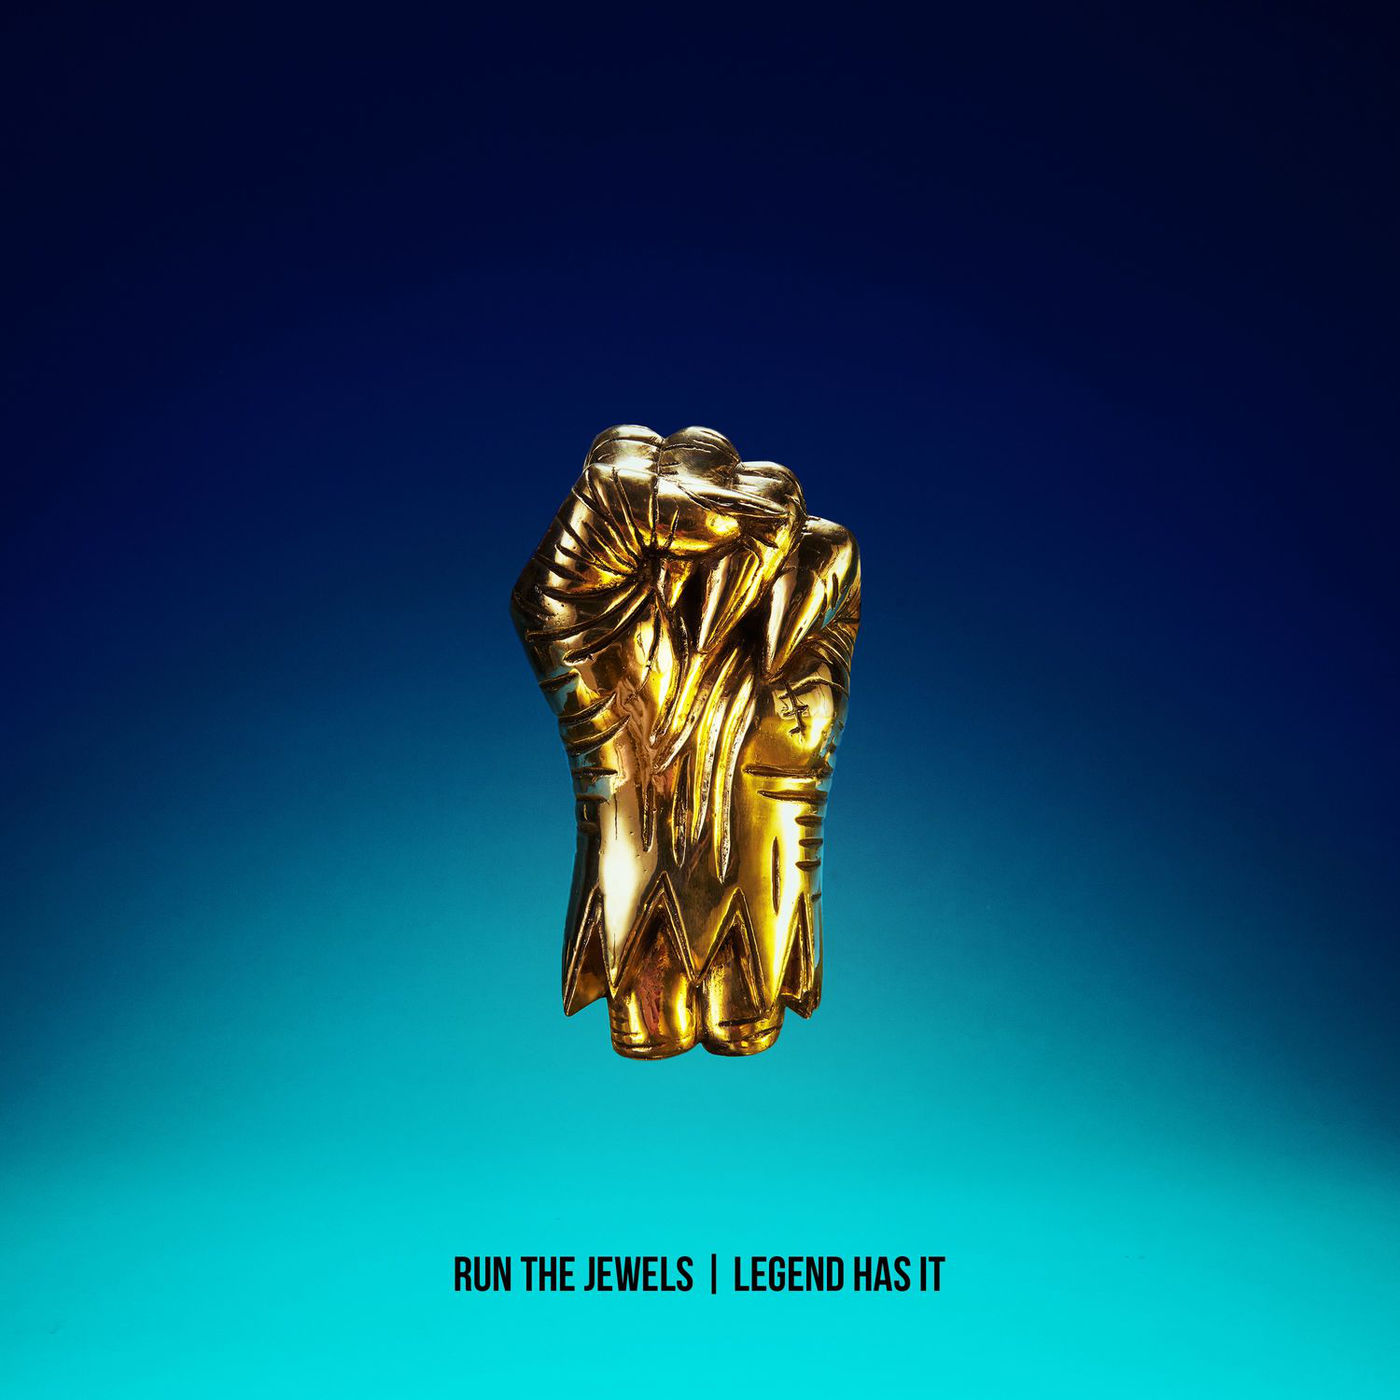 Run the Jewels (album)